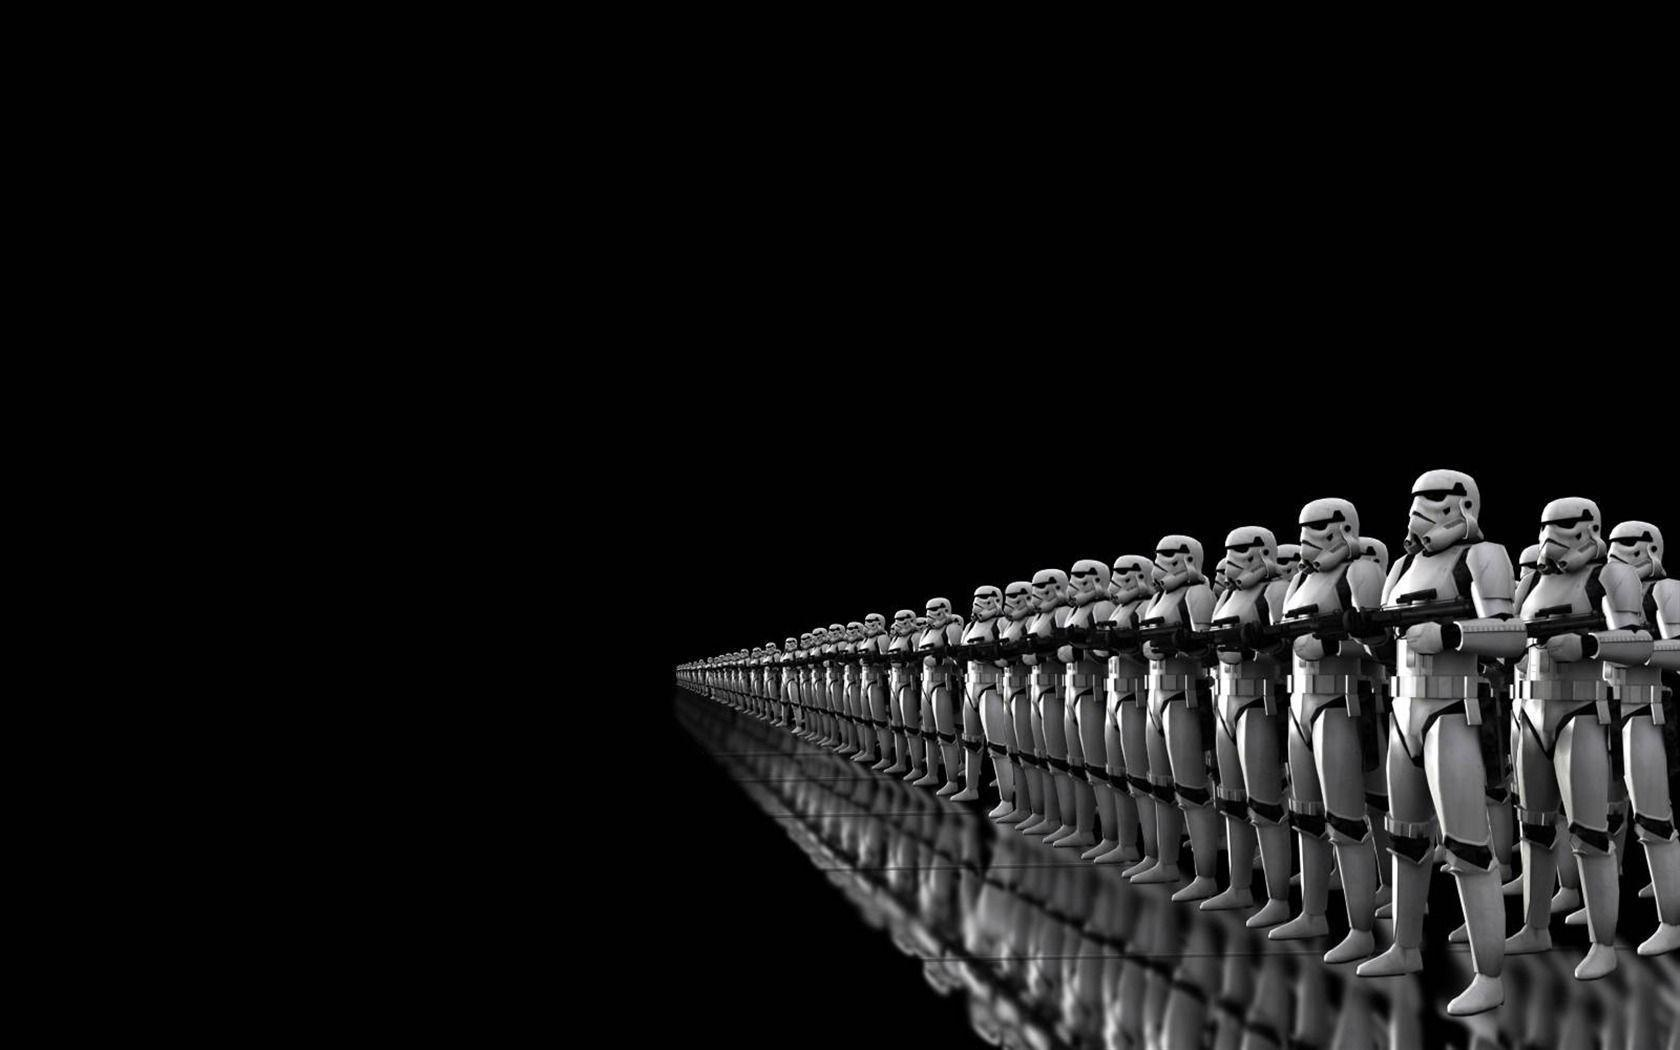 star wars-Imperial Stormtrooper series desktop wallpaper .